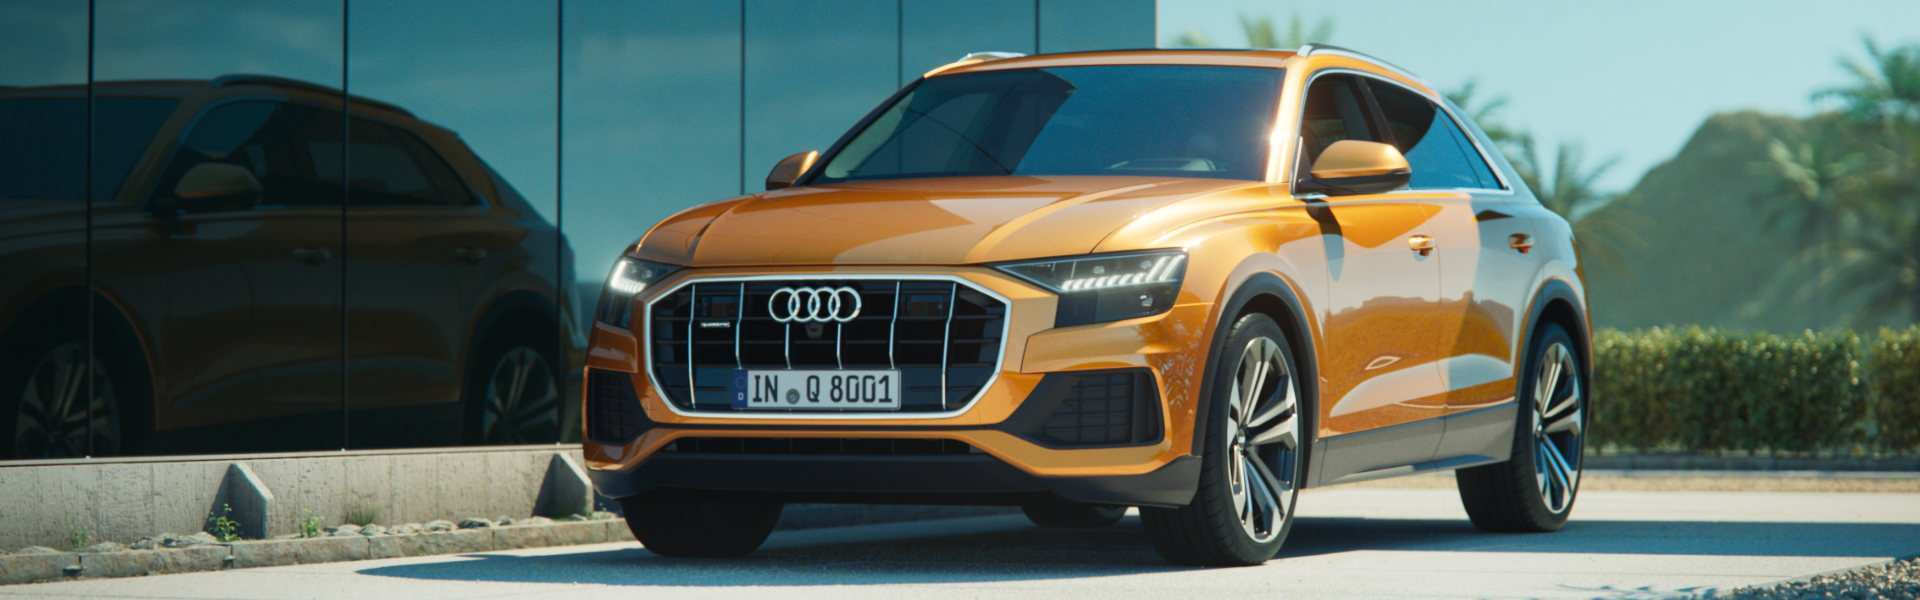 96 The Audi Q8 2020 Spy Shoot